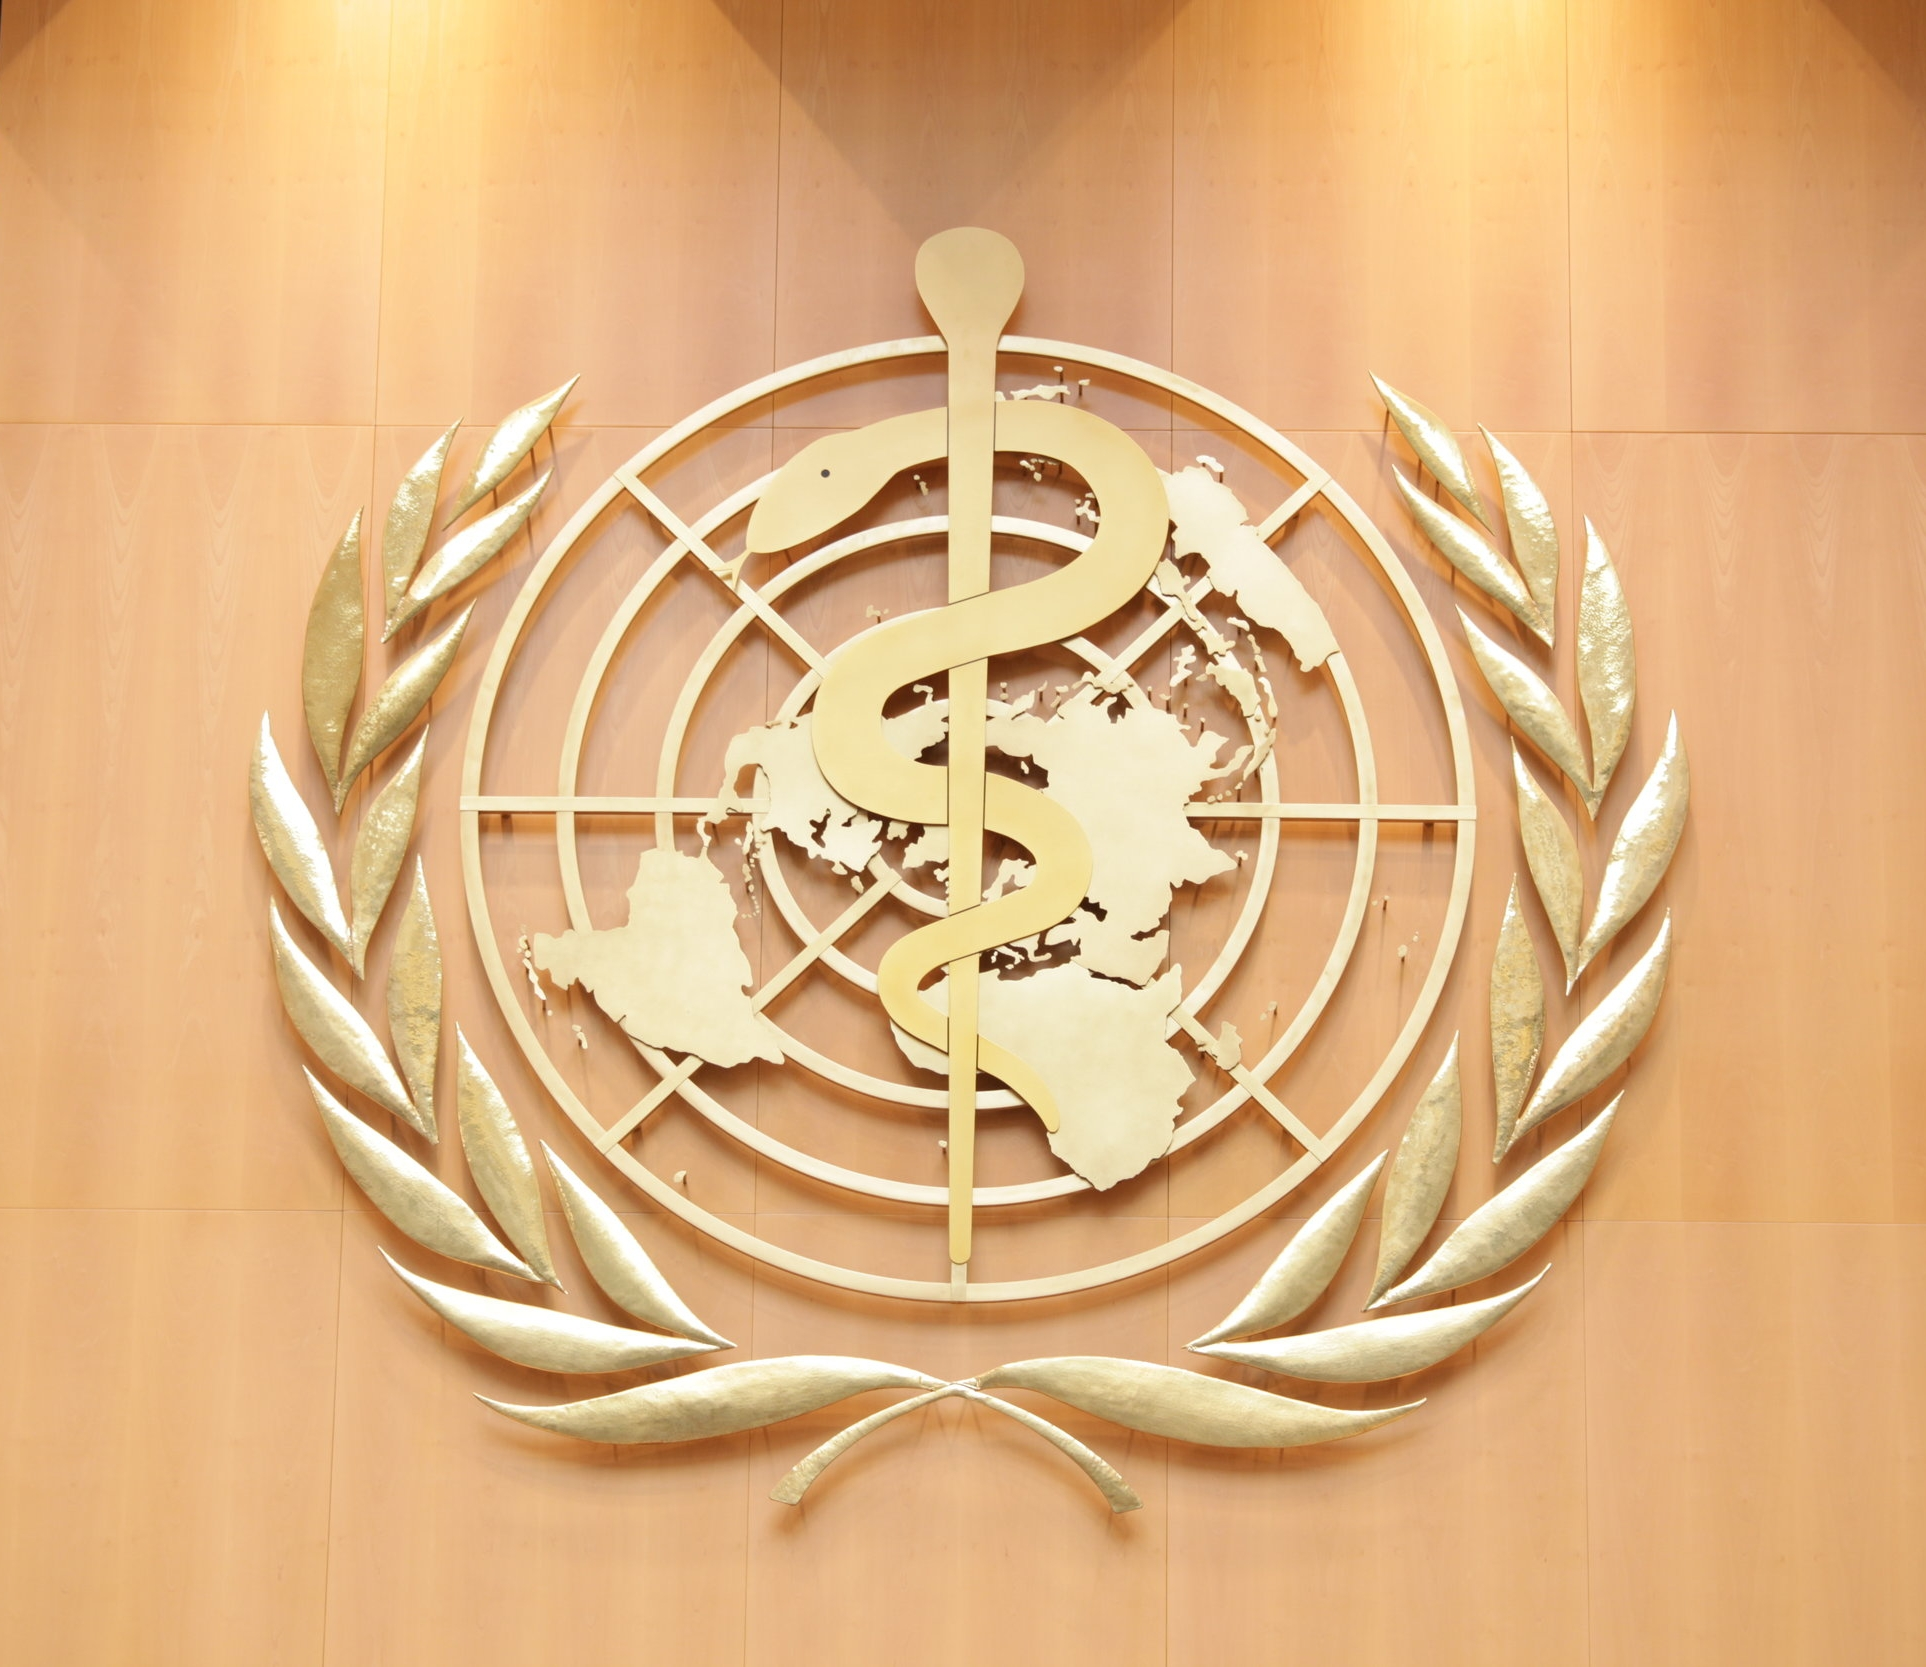 World Health Organization recognizes acupuncture  as an effective treatment for musculoskeletal pain, digestive issues and neurological conditions.